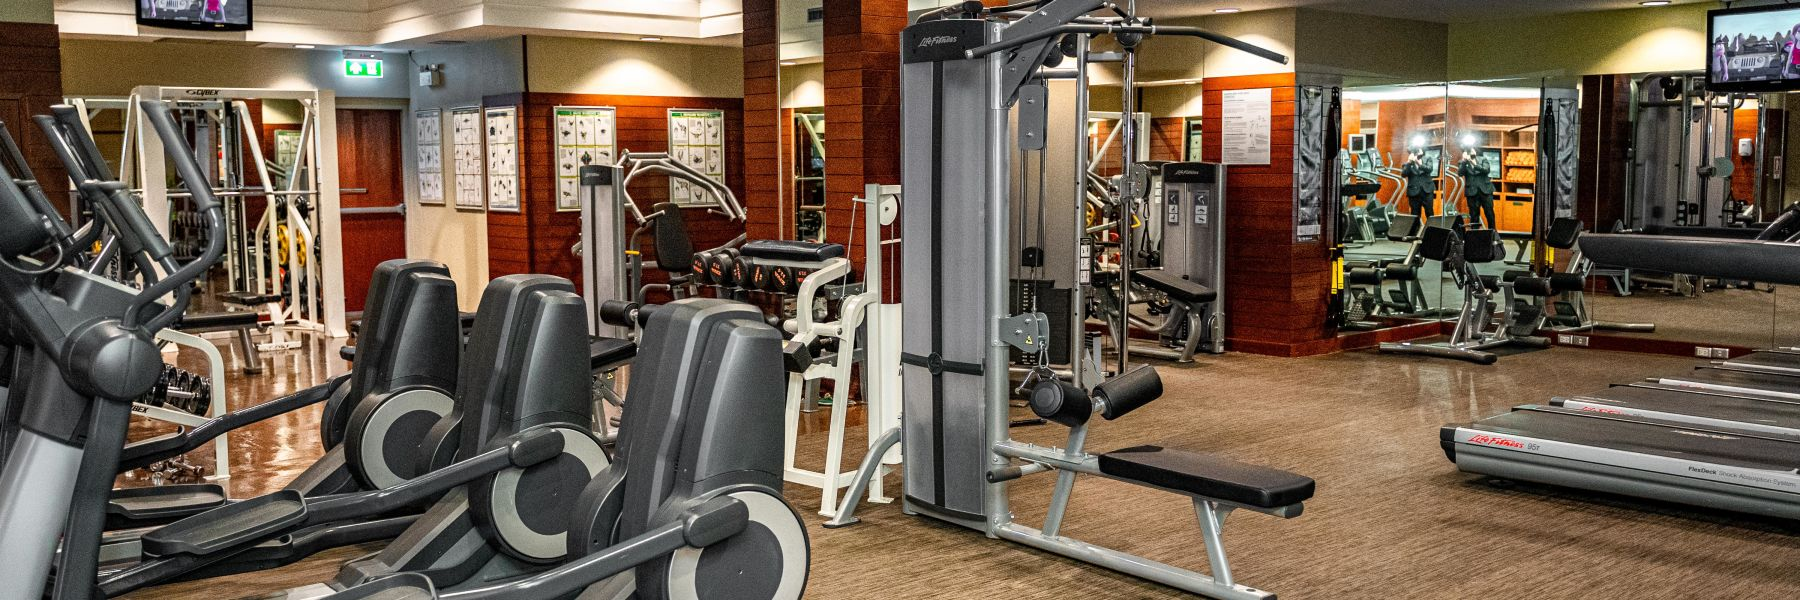 Westin Workout Fitness Studio image